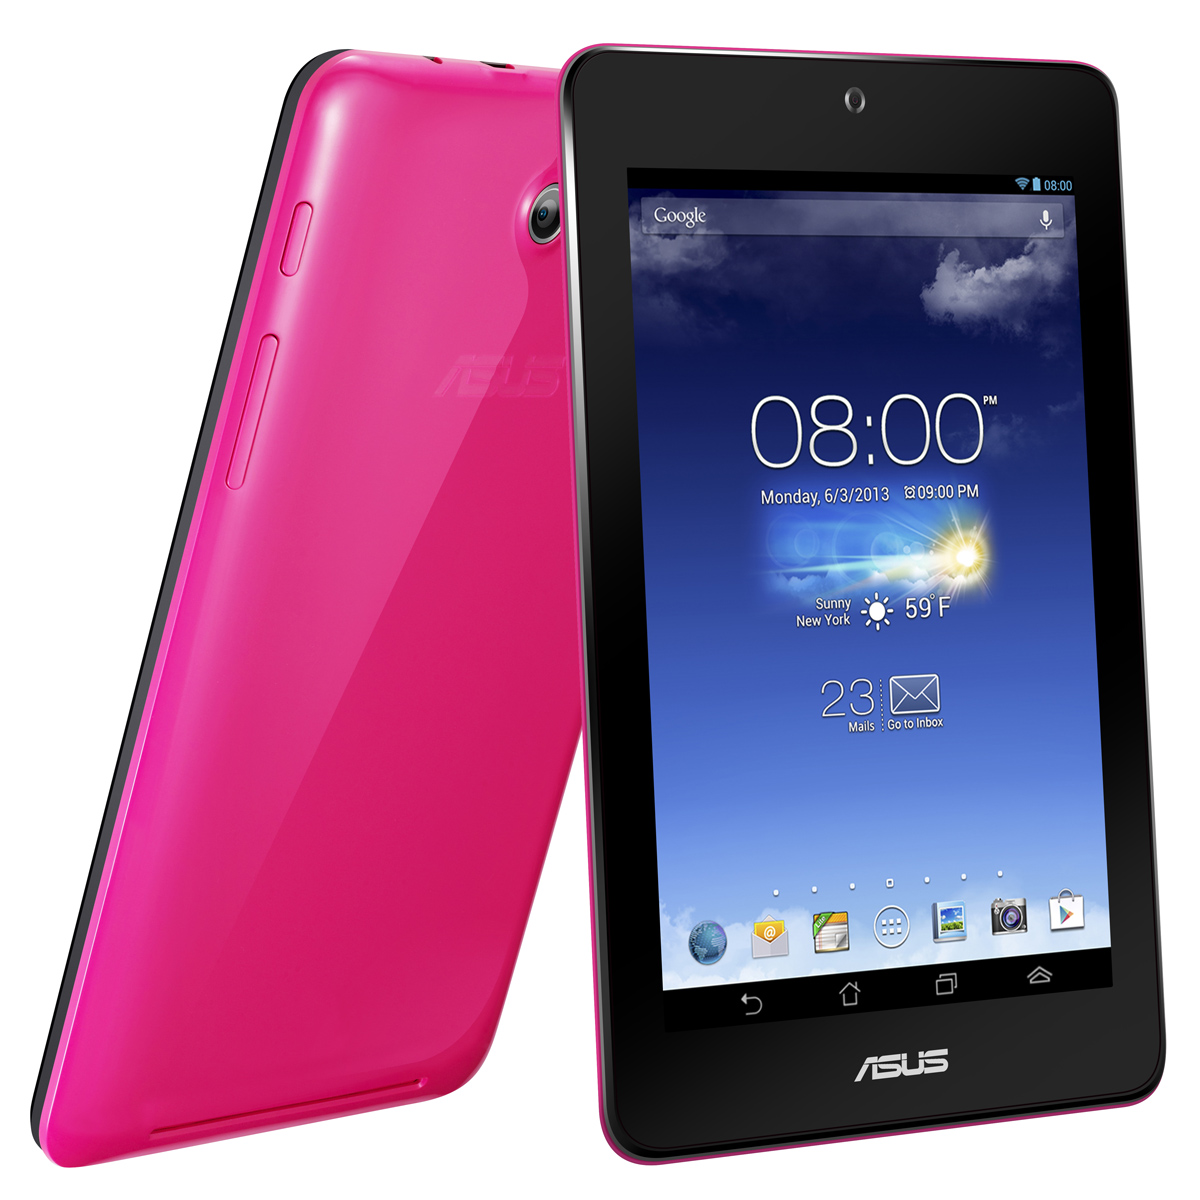 asus memo pad hd 7 rose me173x 1b002a tablette tactile asus sur. Black Bedroom Furniture Sets. Home Design Ideas